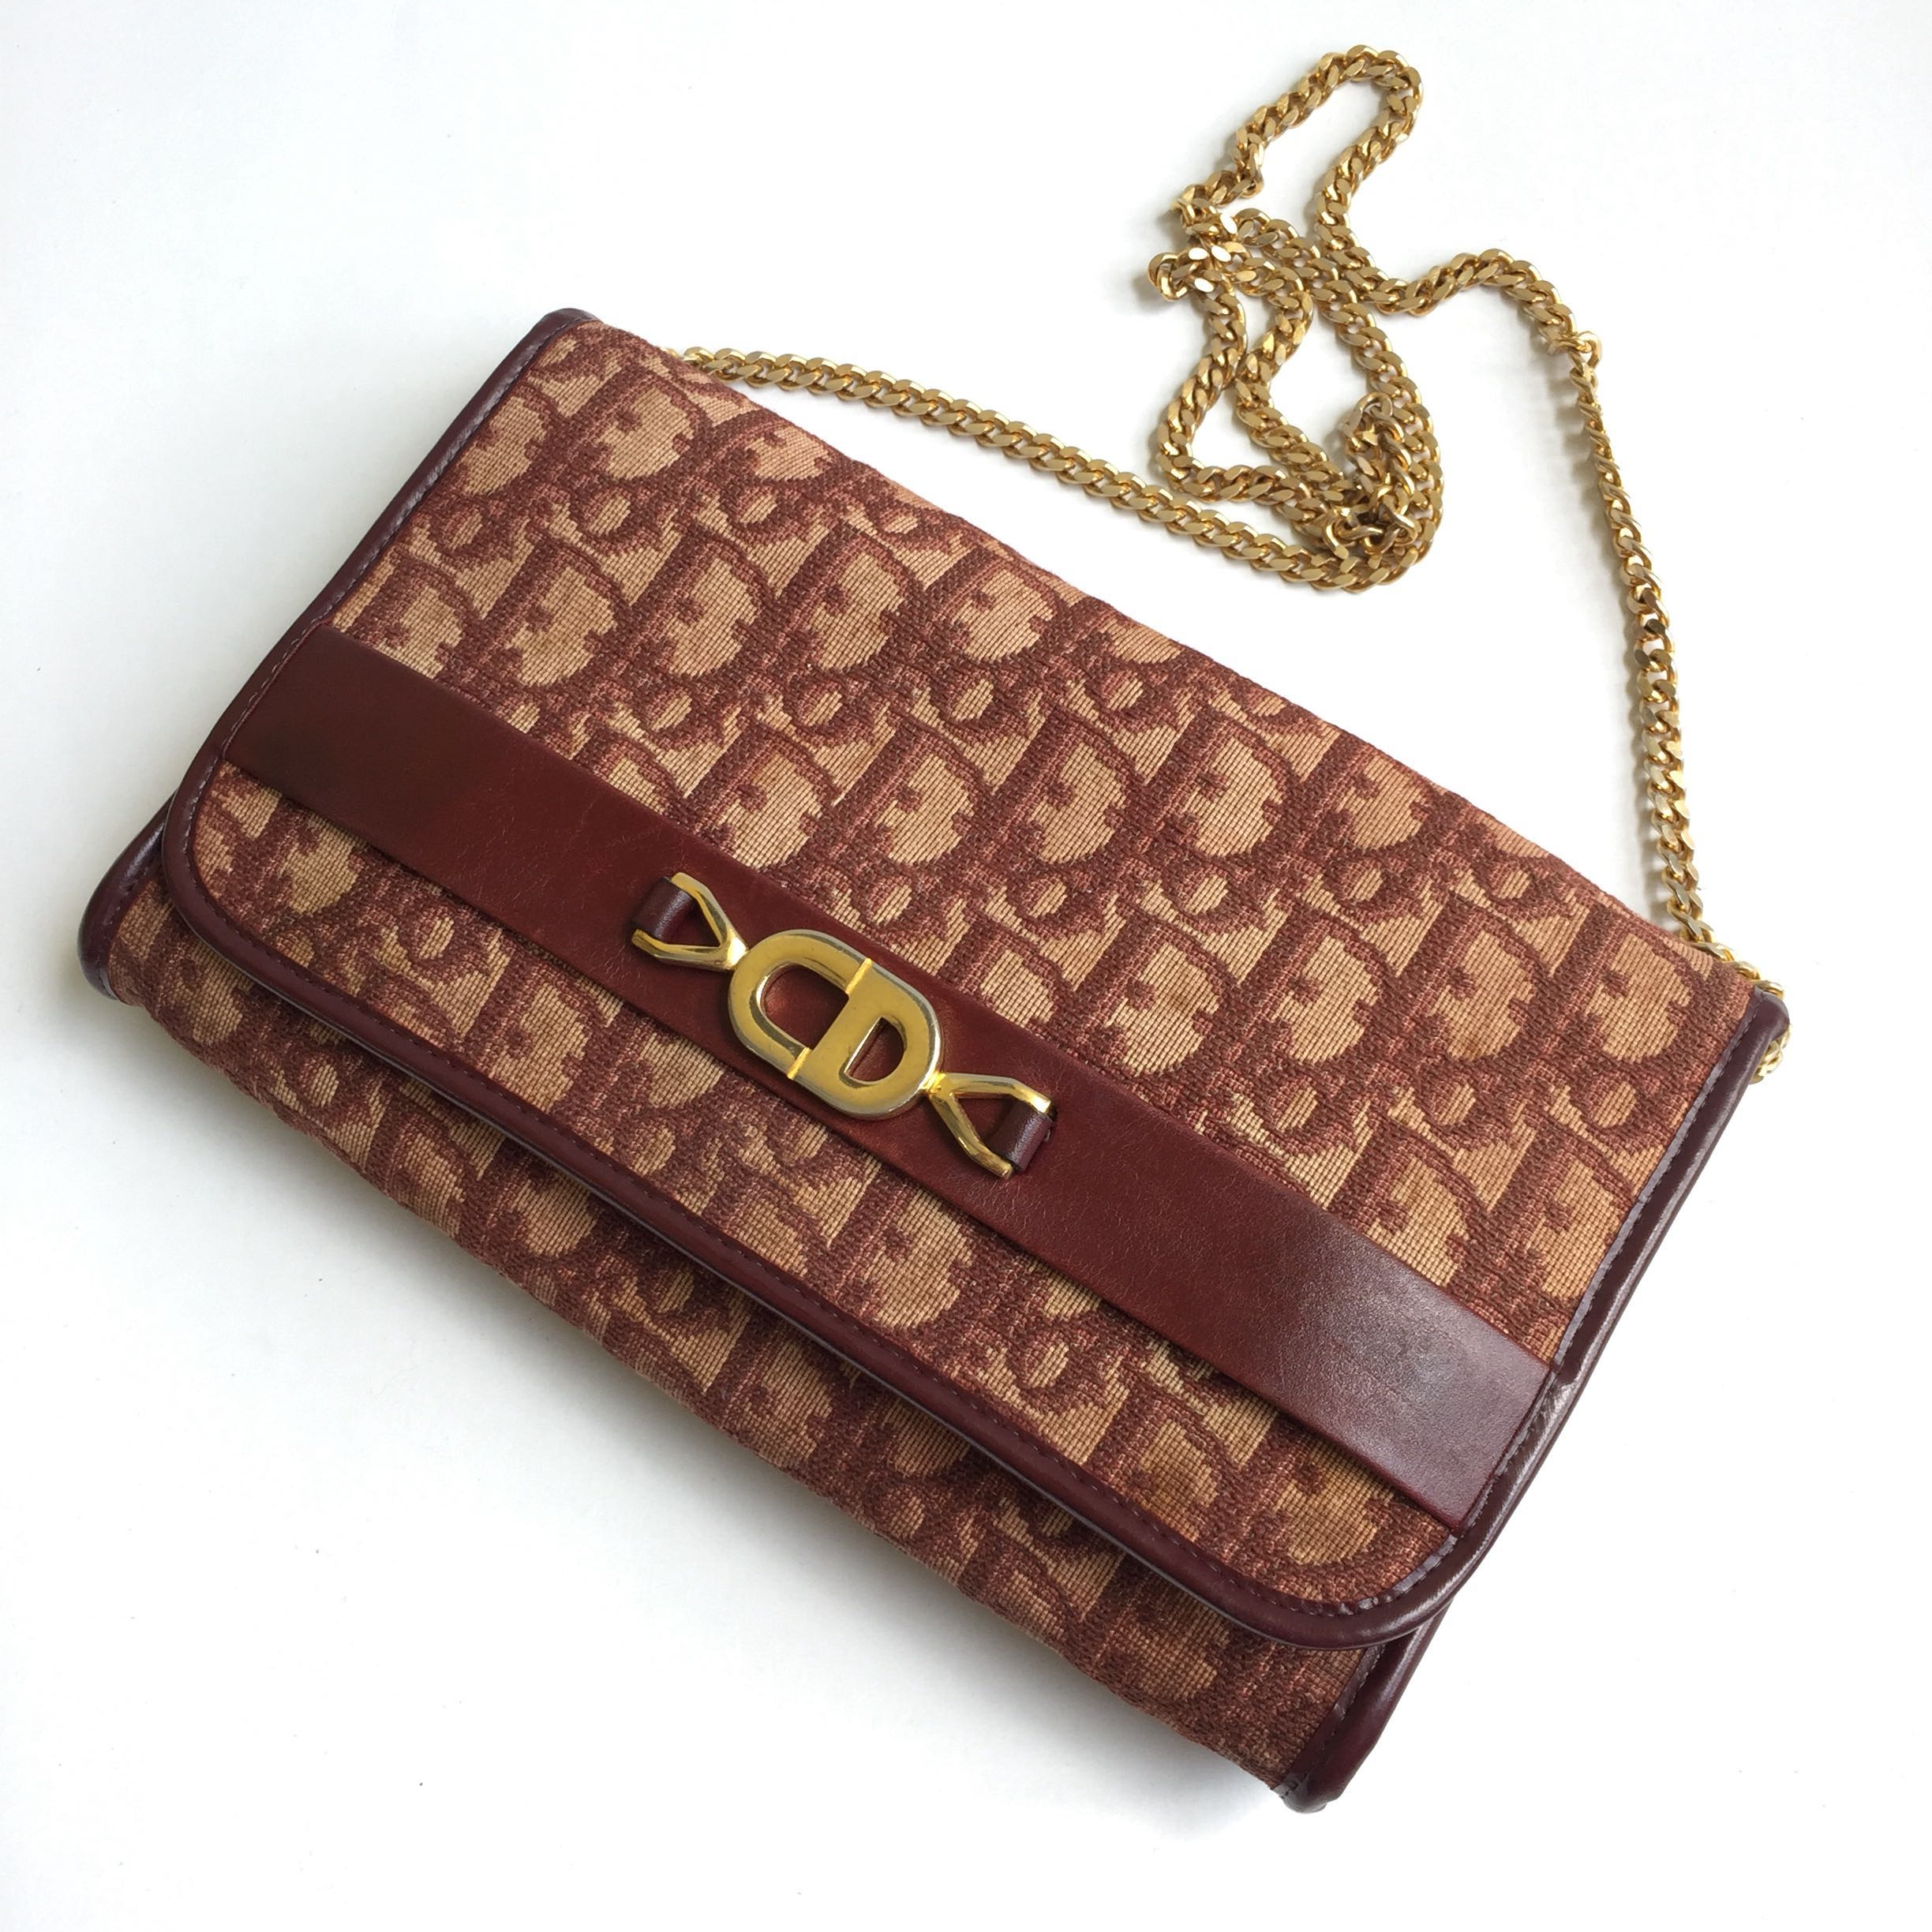 Home · Women s Fashion · Bags   Wallets · Handbags. photo photo photo photo  photo 5e851b632ccef